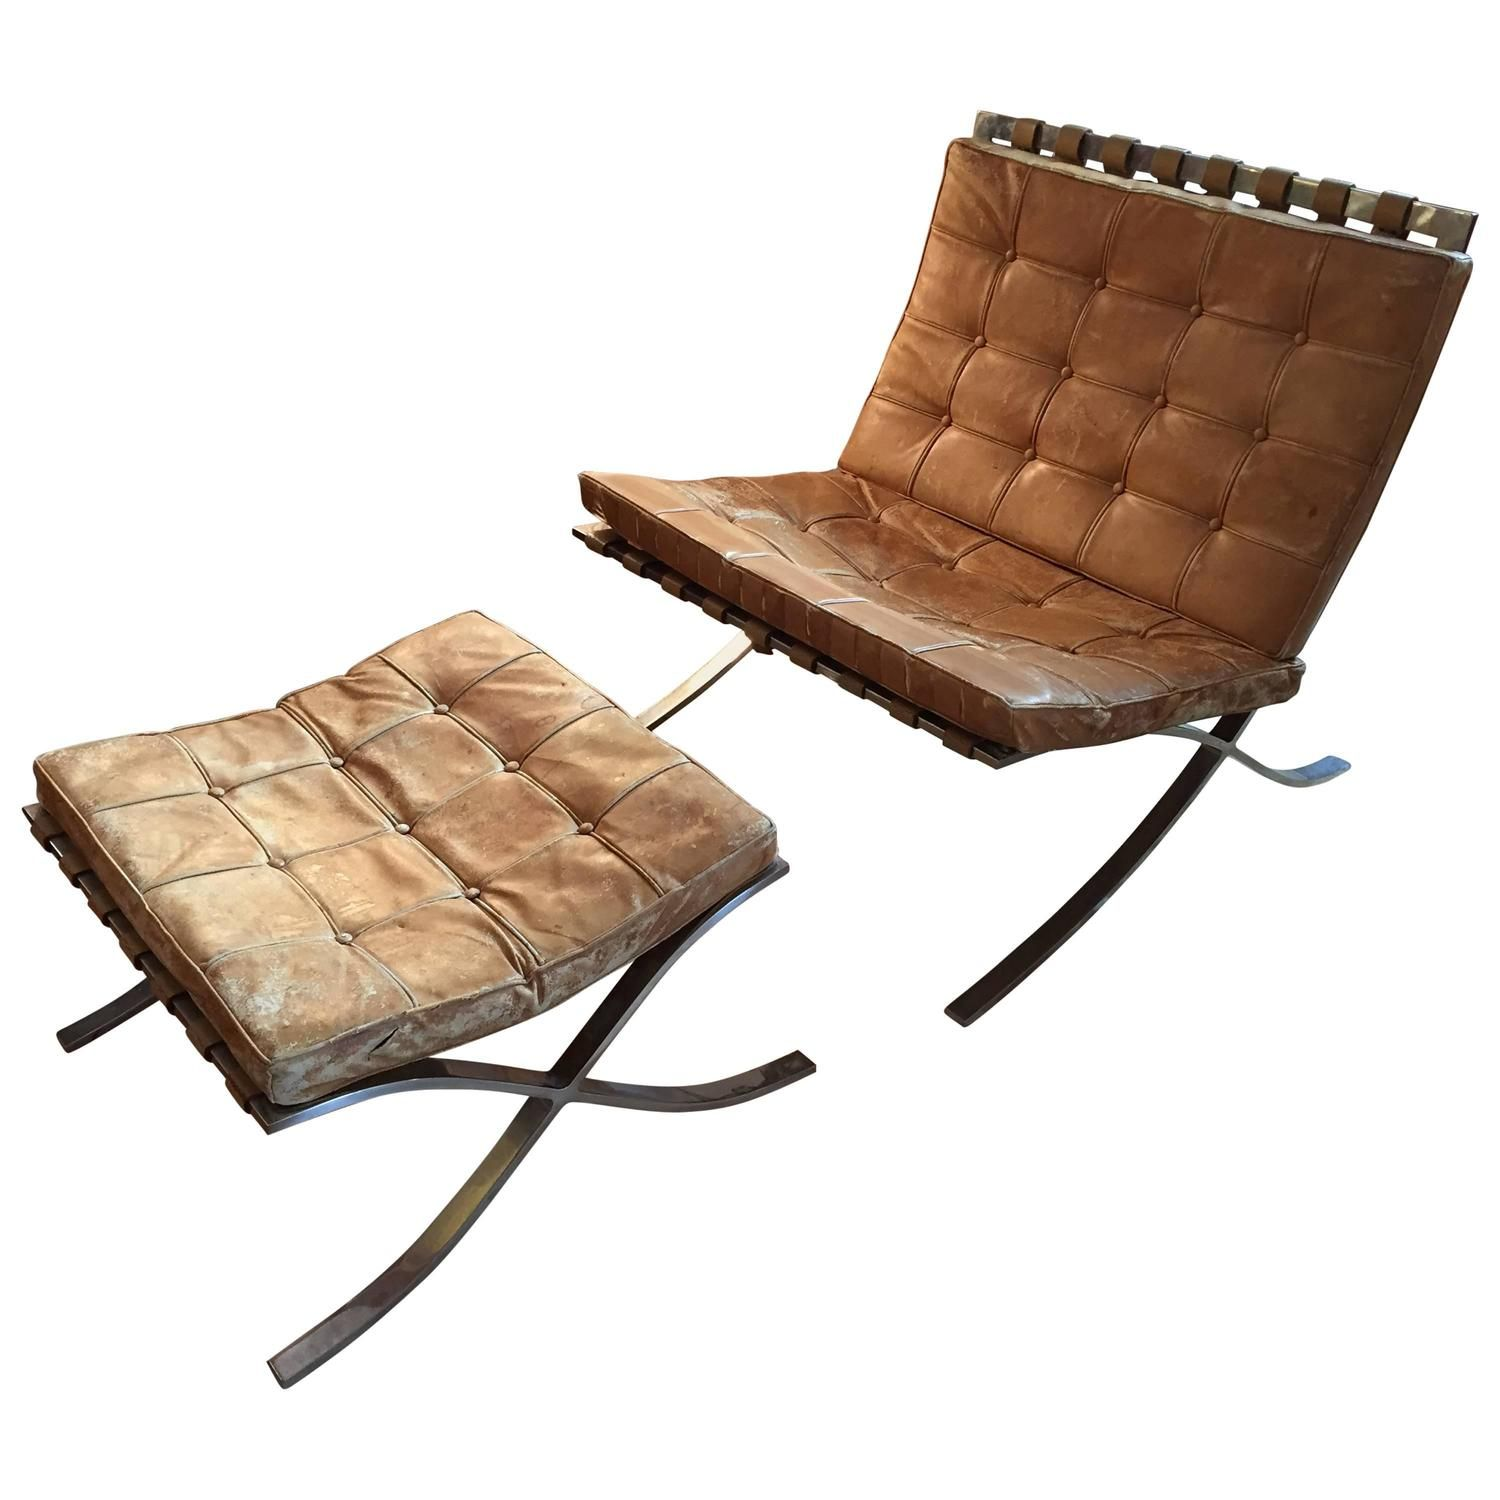 Early Ludwig Mies Van Der Rohe Barcelona Chair With Ottoman By Knoll 1stdibs Com Vintage Lounge Chair Barcelona Chair Mies Van Der Rohe Barcelona Chair